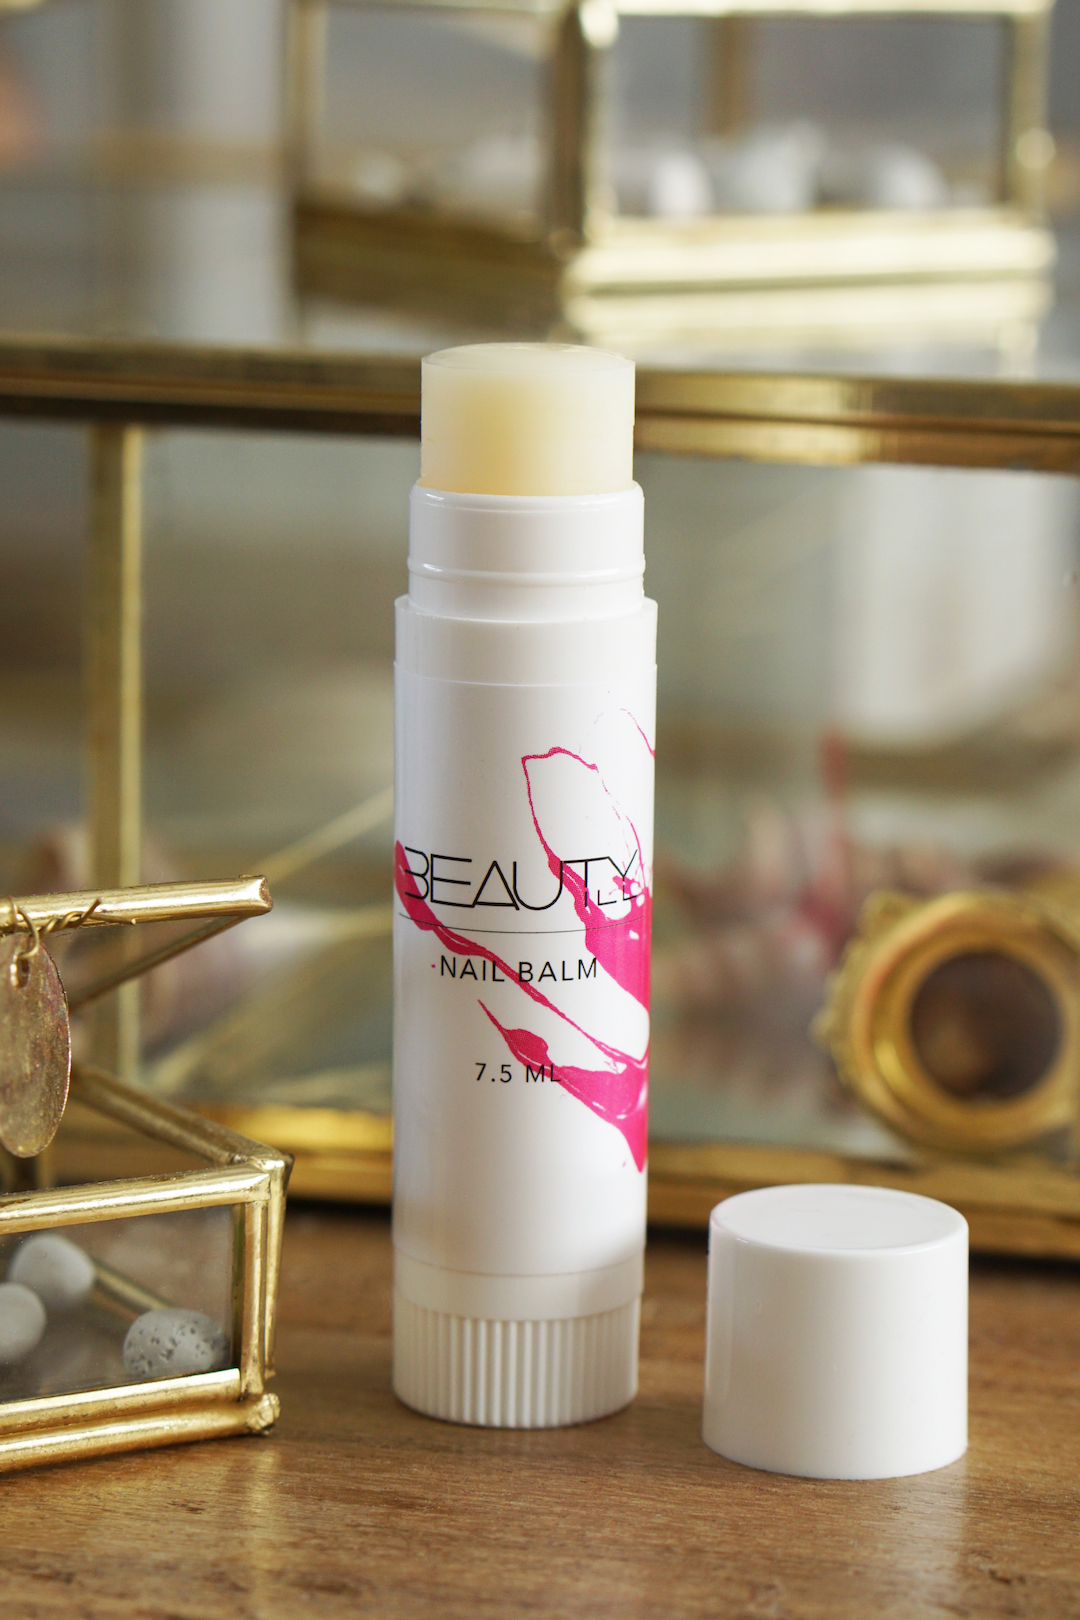 Beautyill Shop 2 jaar, NEW Beautyill Nail Balm!